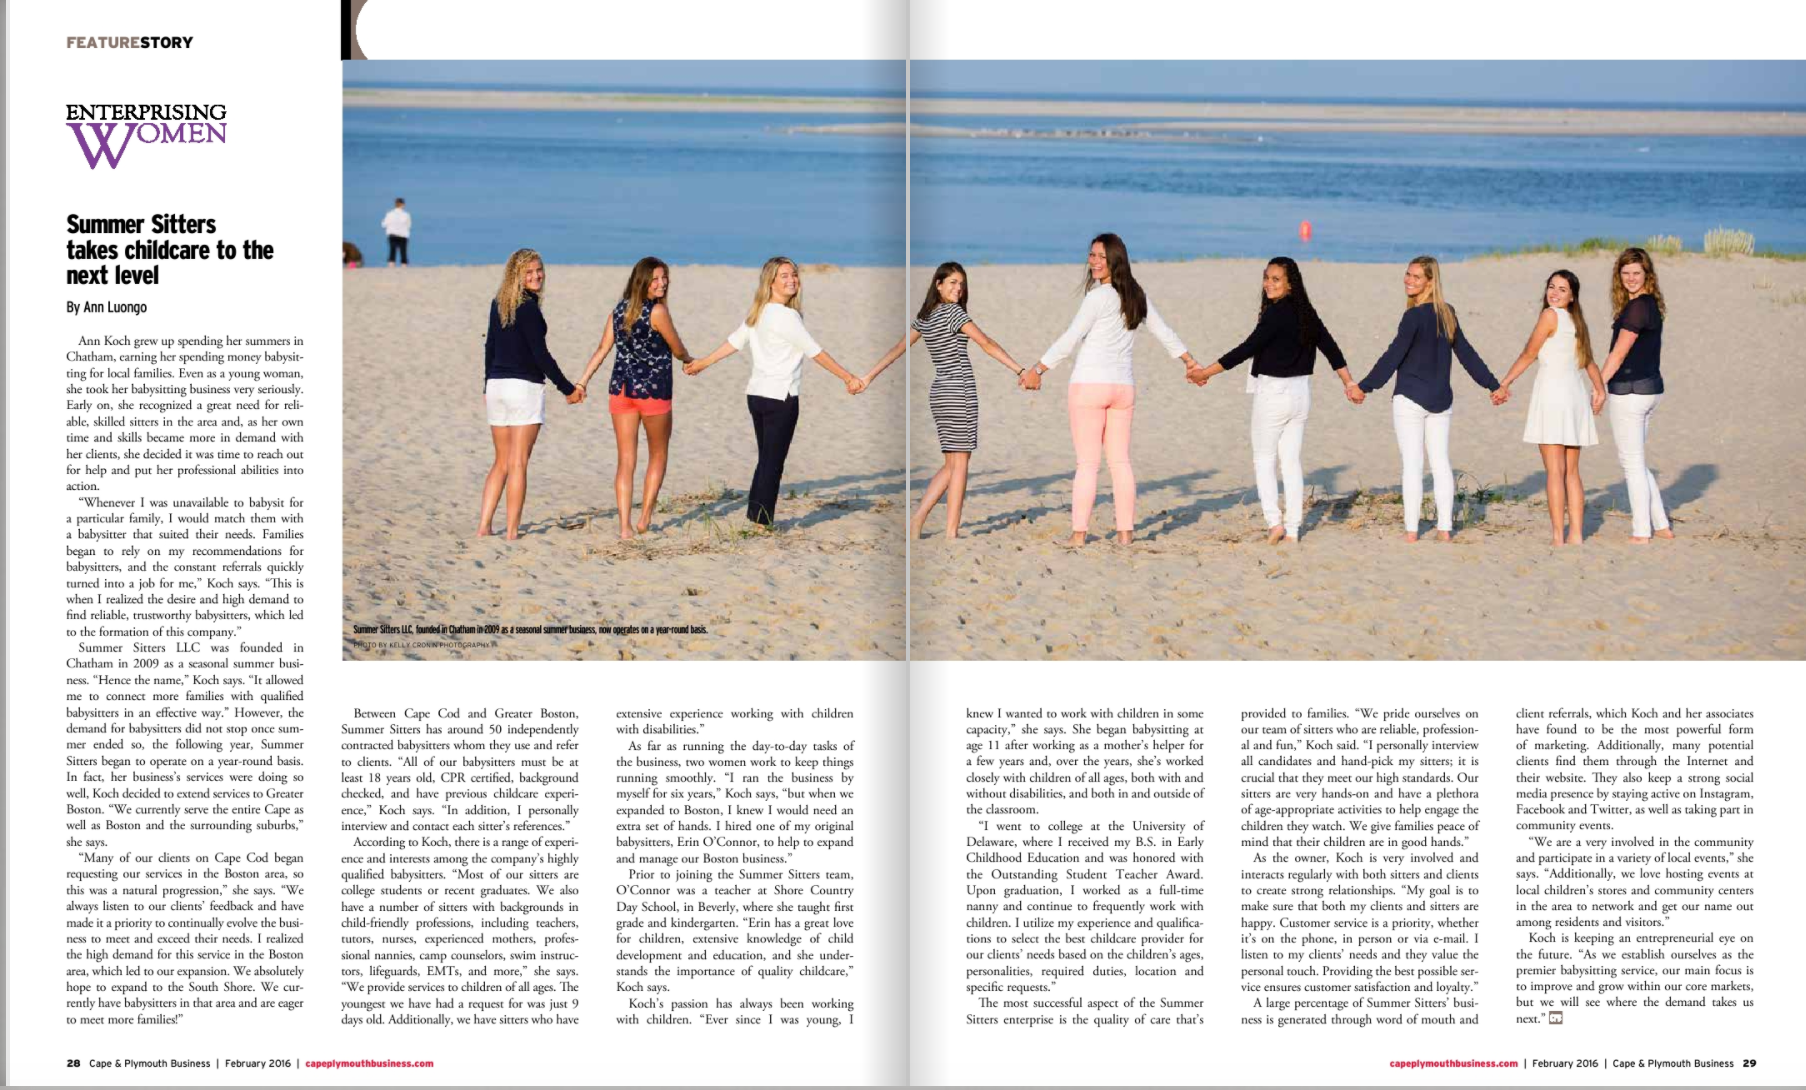 Cape & Plymouth Business Magazine